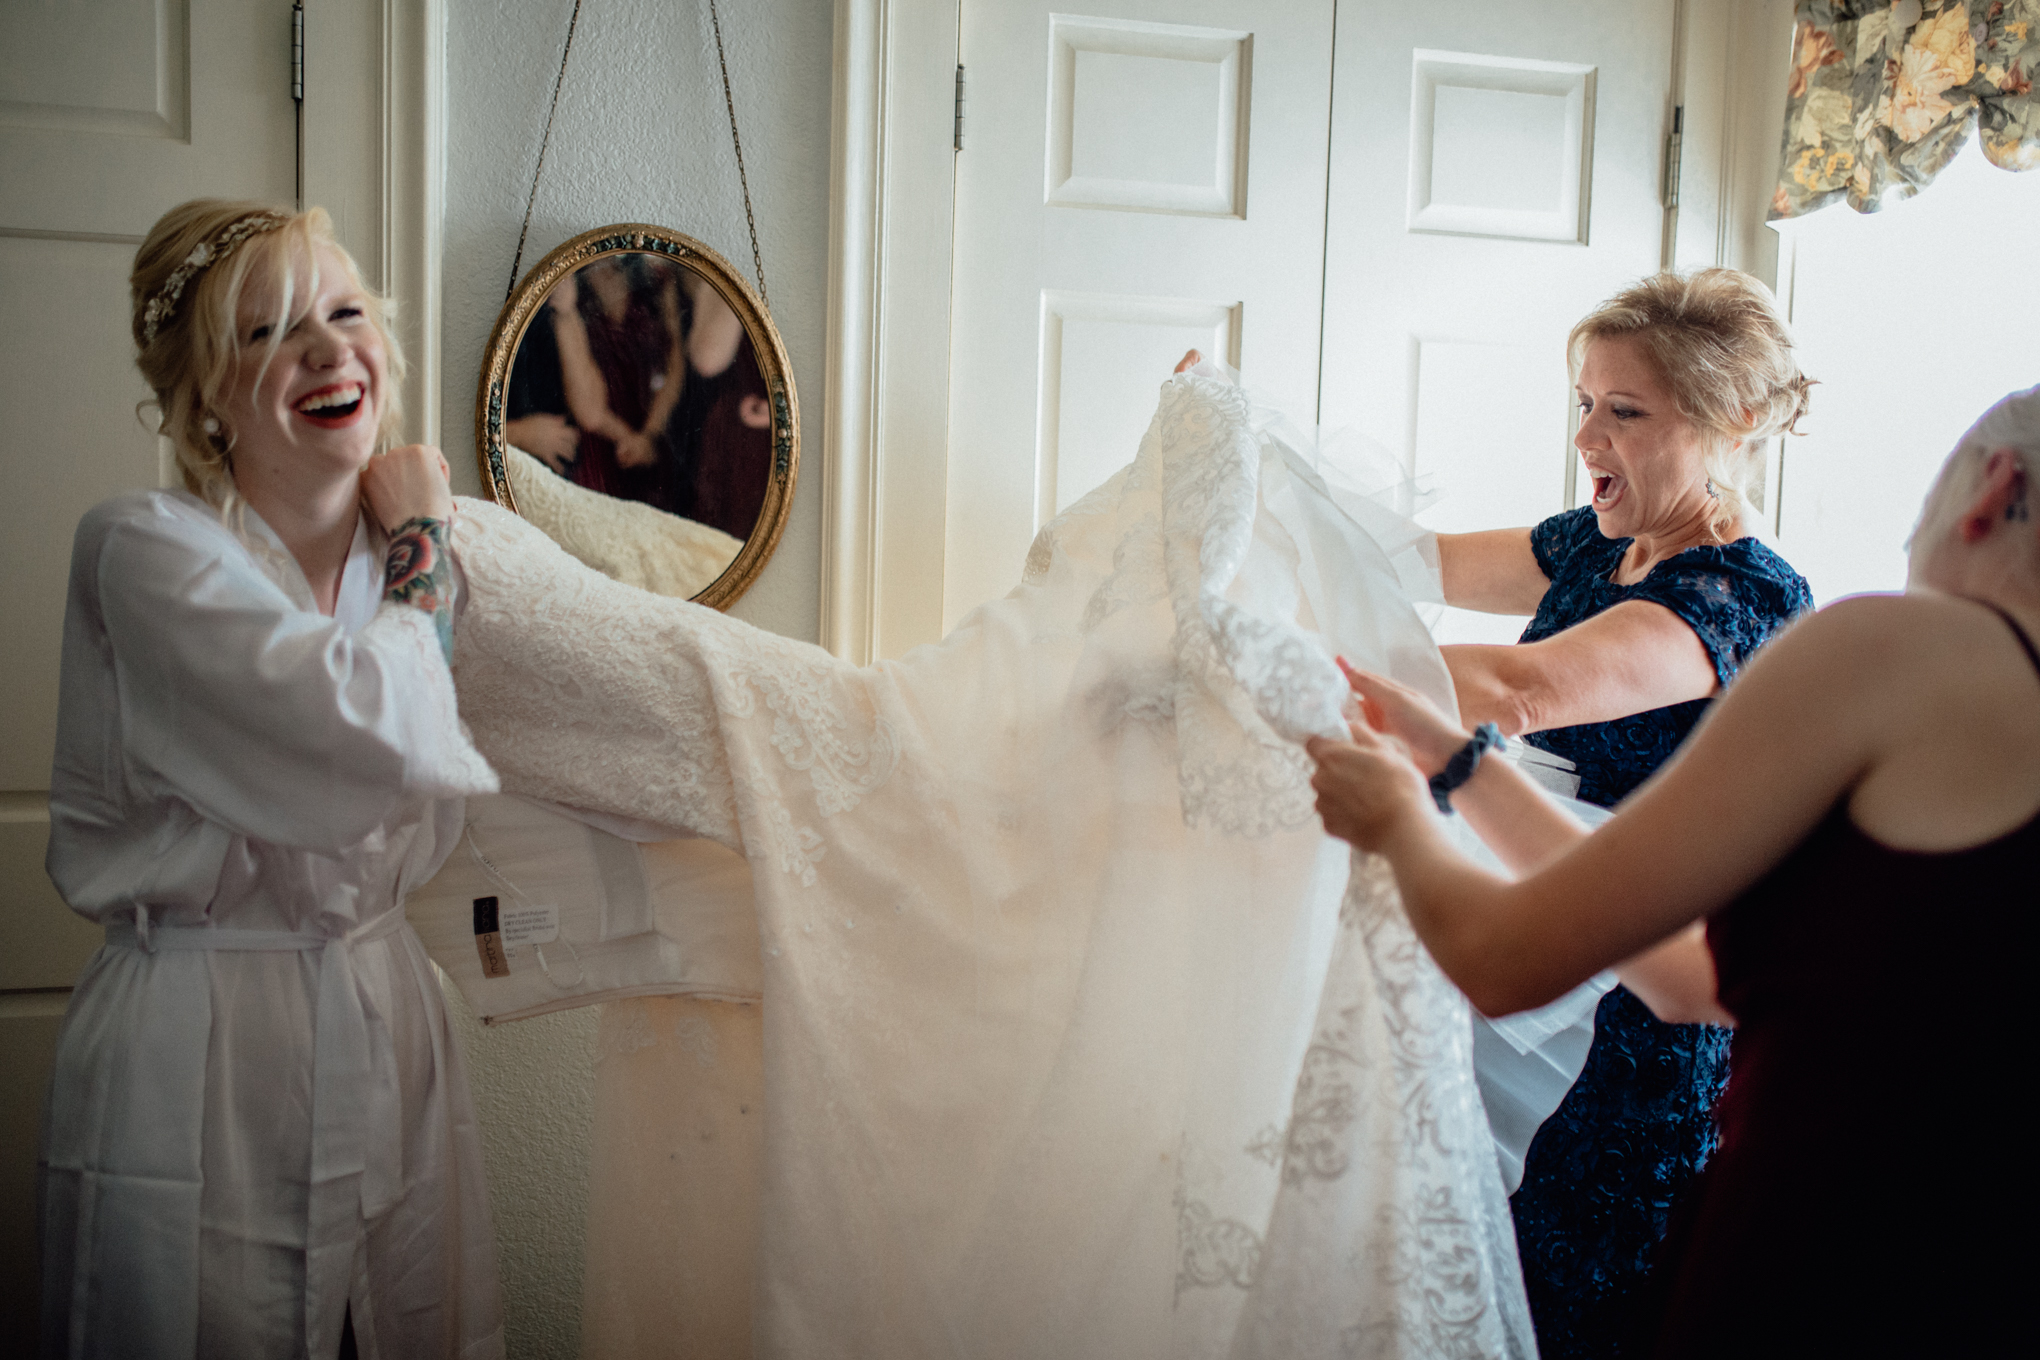 Mother and bridesmaid helping bride get dress off hanger